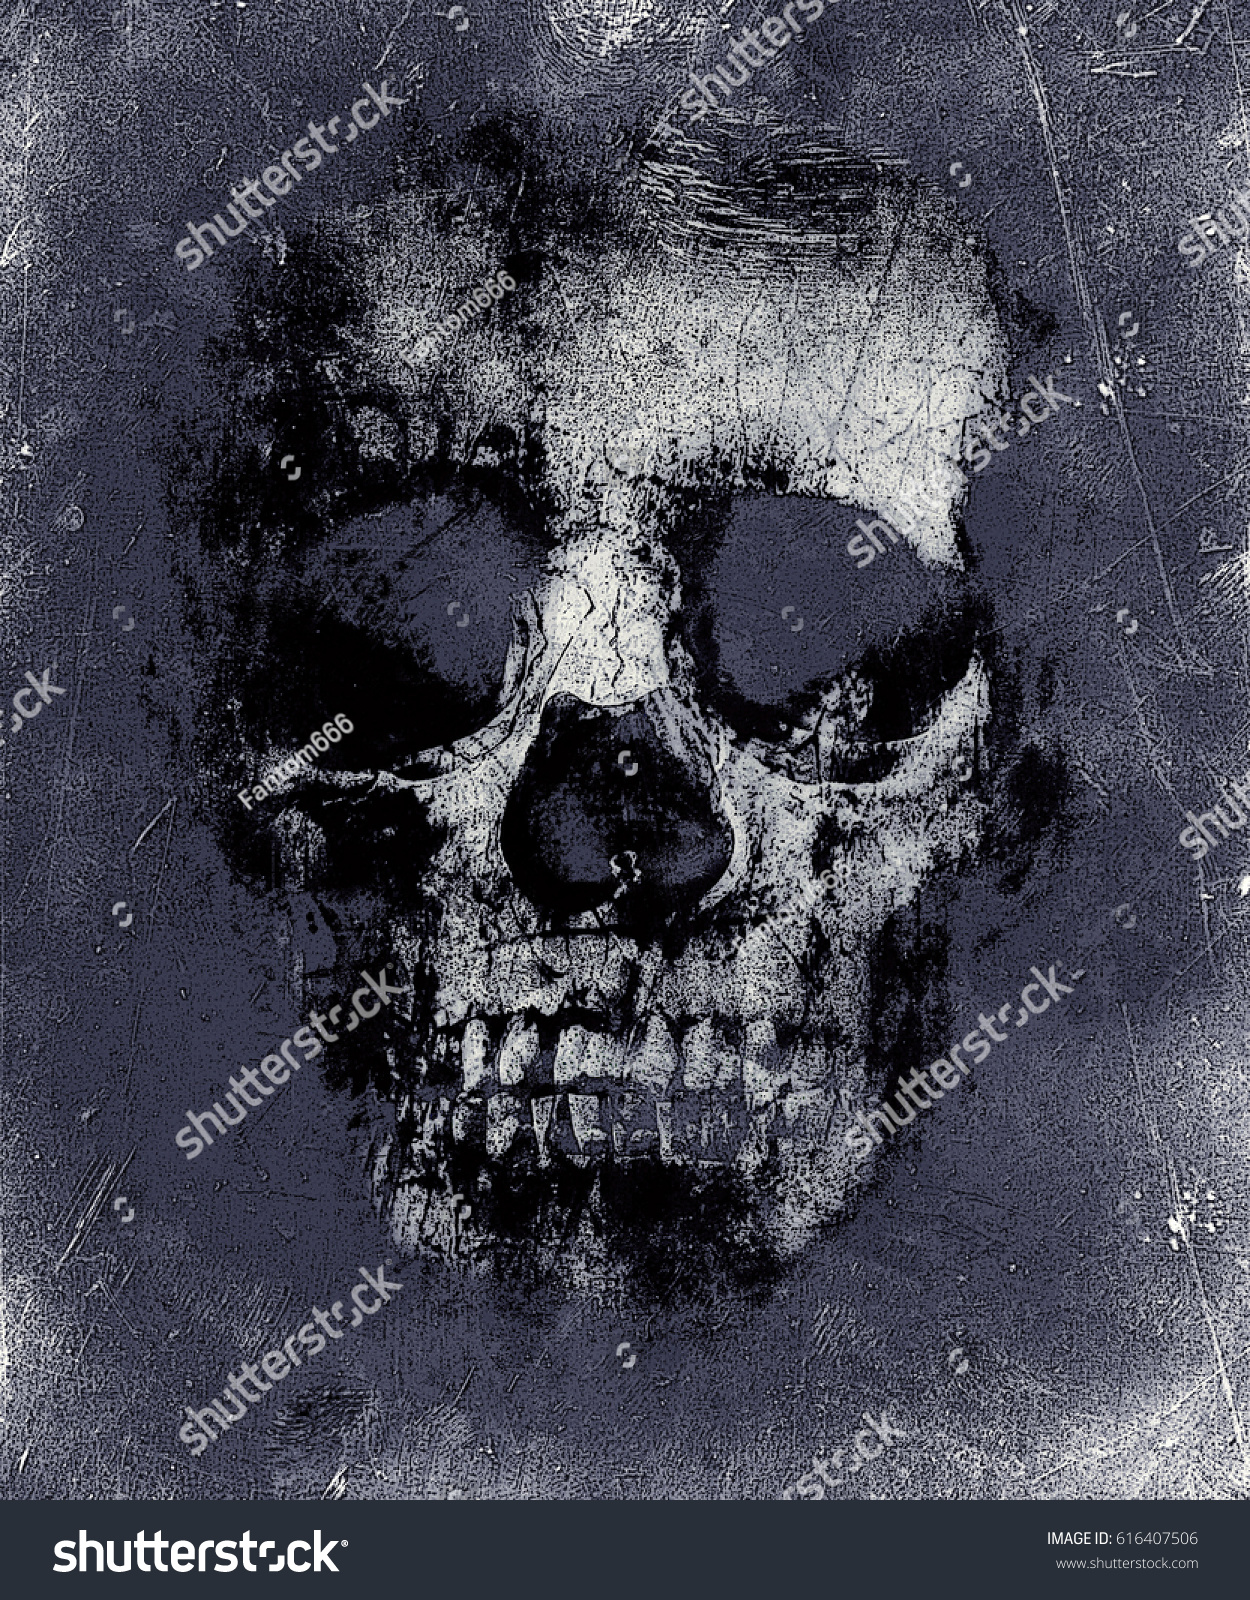 Fantastic Wallpaper Halloween Skull - stock-photo-wallpaper-with-scary-skull-horror-background-for-halloween-concept-and-movie-poster-project-616407506  Photograph_778168.jpg